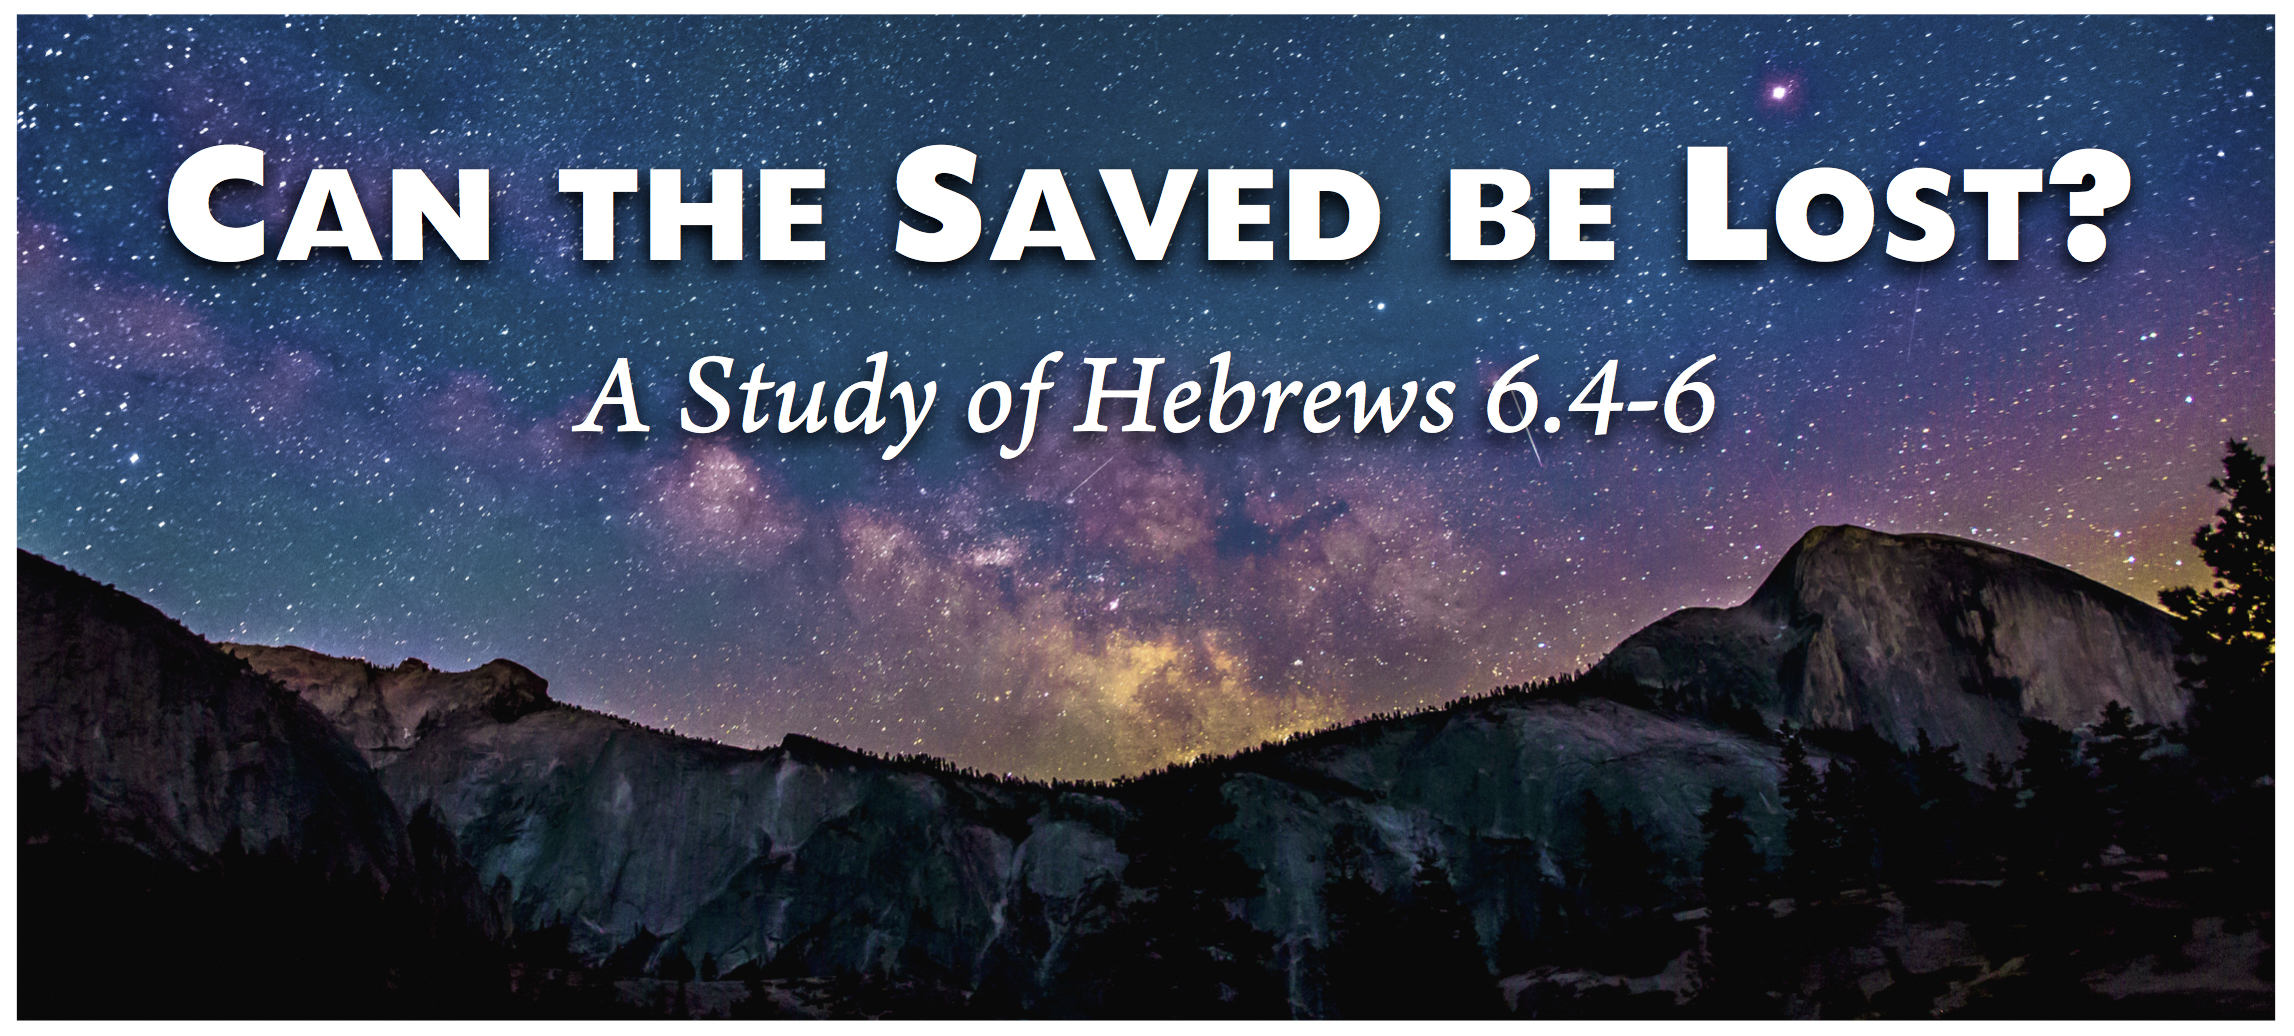 Can The Saved Be Lost? A Study Of Hebrews 6.4-6 | The Doc File